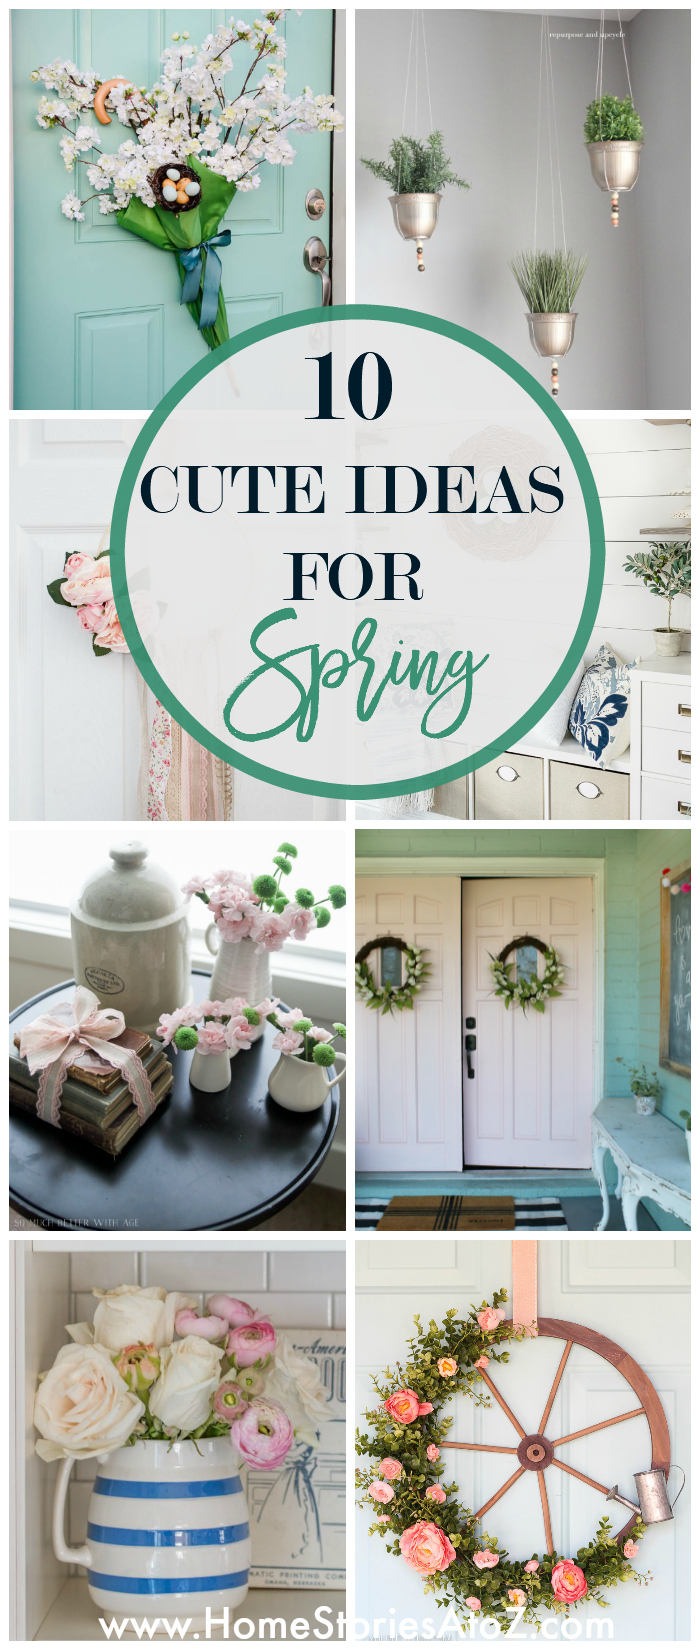 10 Cute and Easy Decorating Ideas for Spring